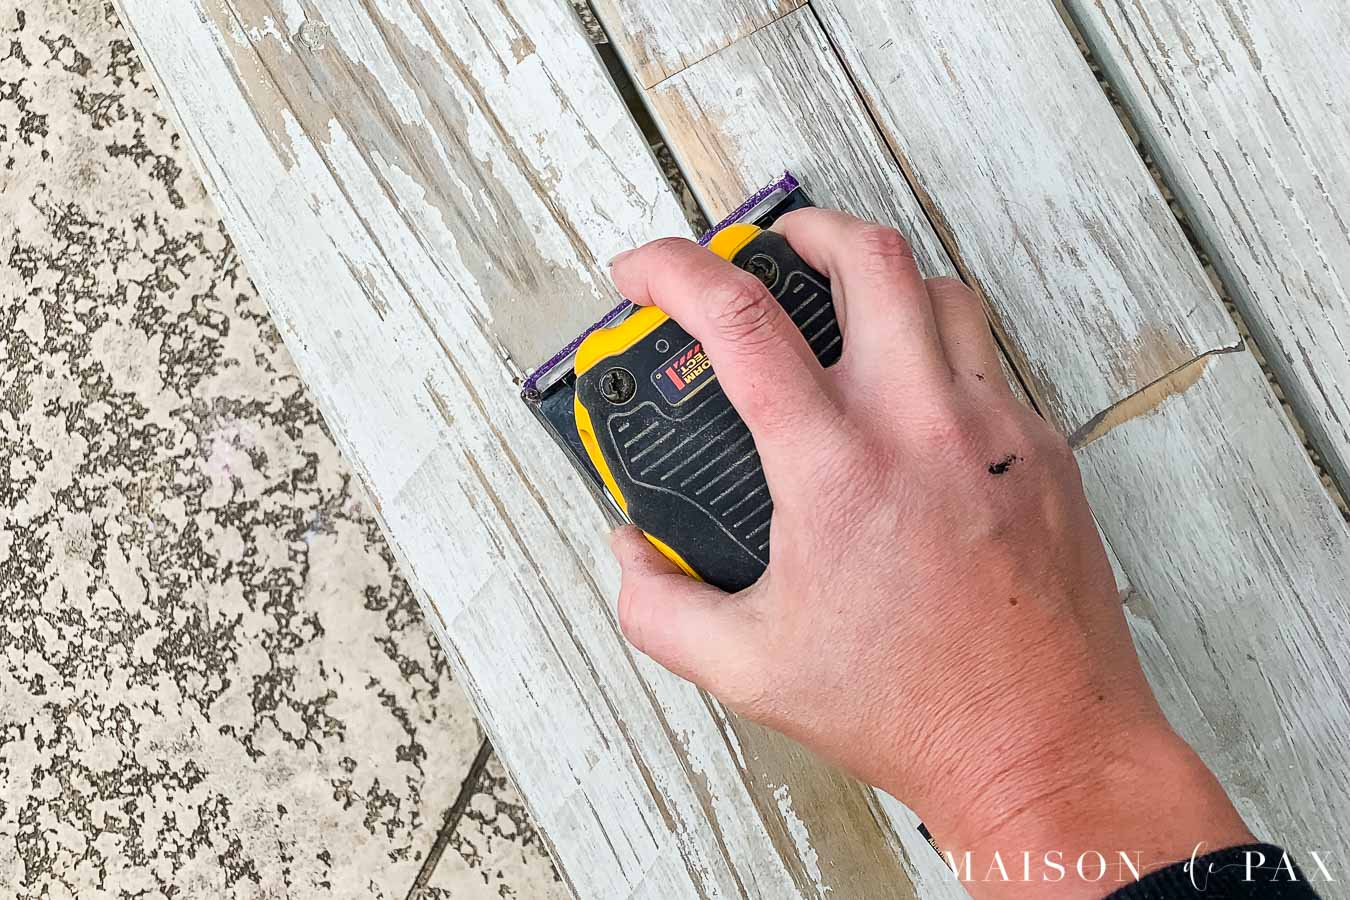 sanding chipping paint in preparation for painting outdoor furniture